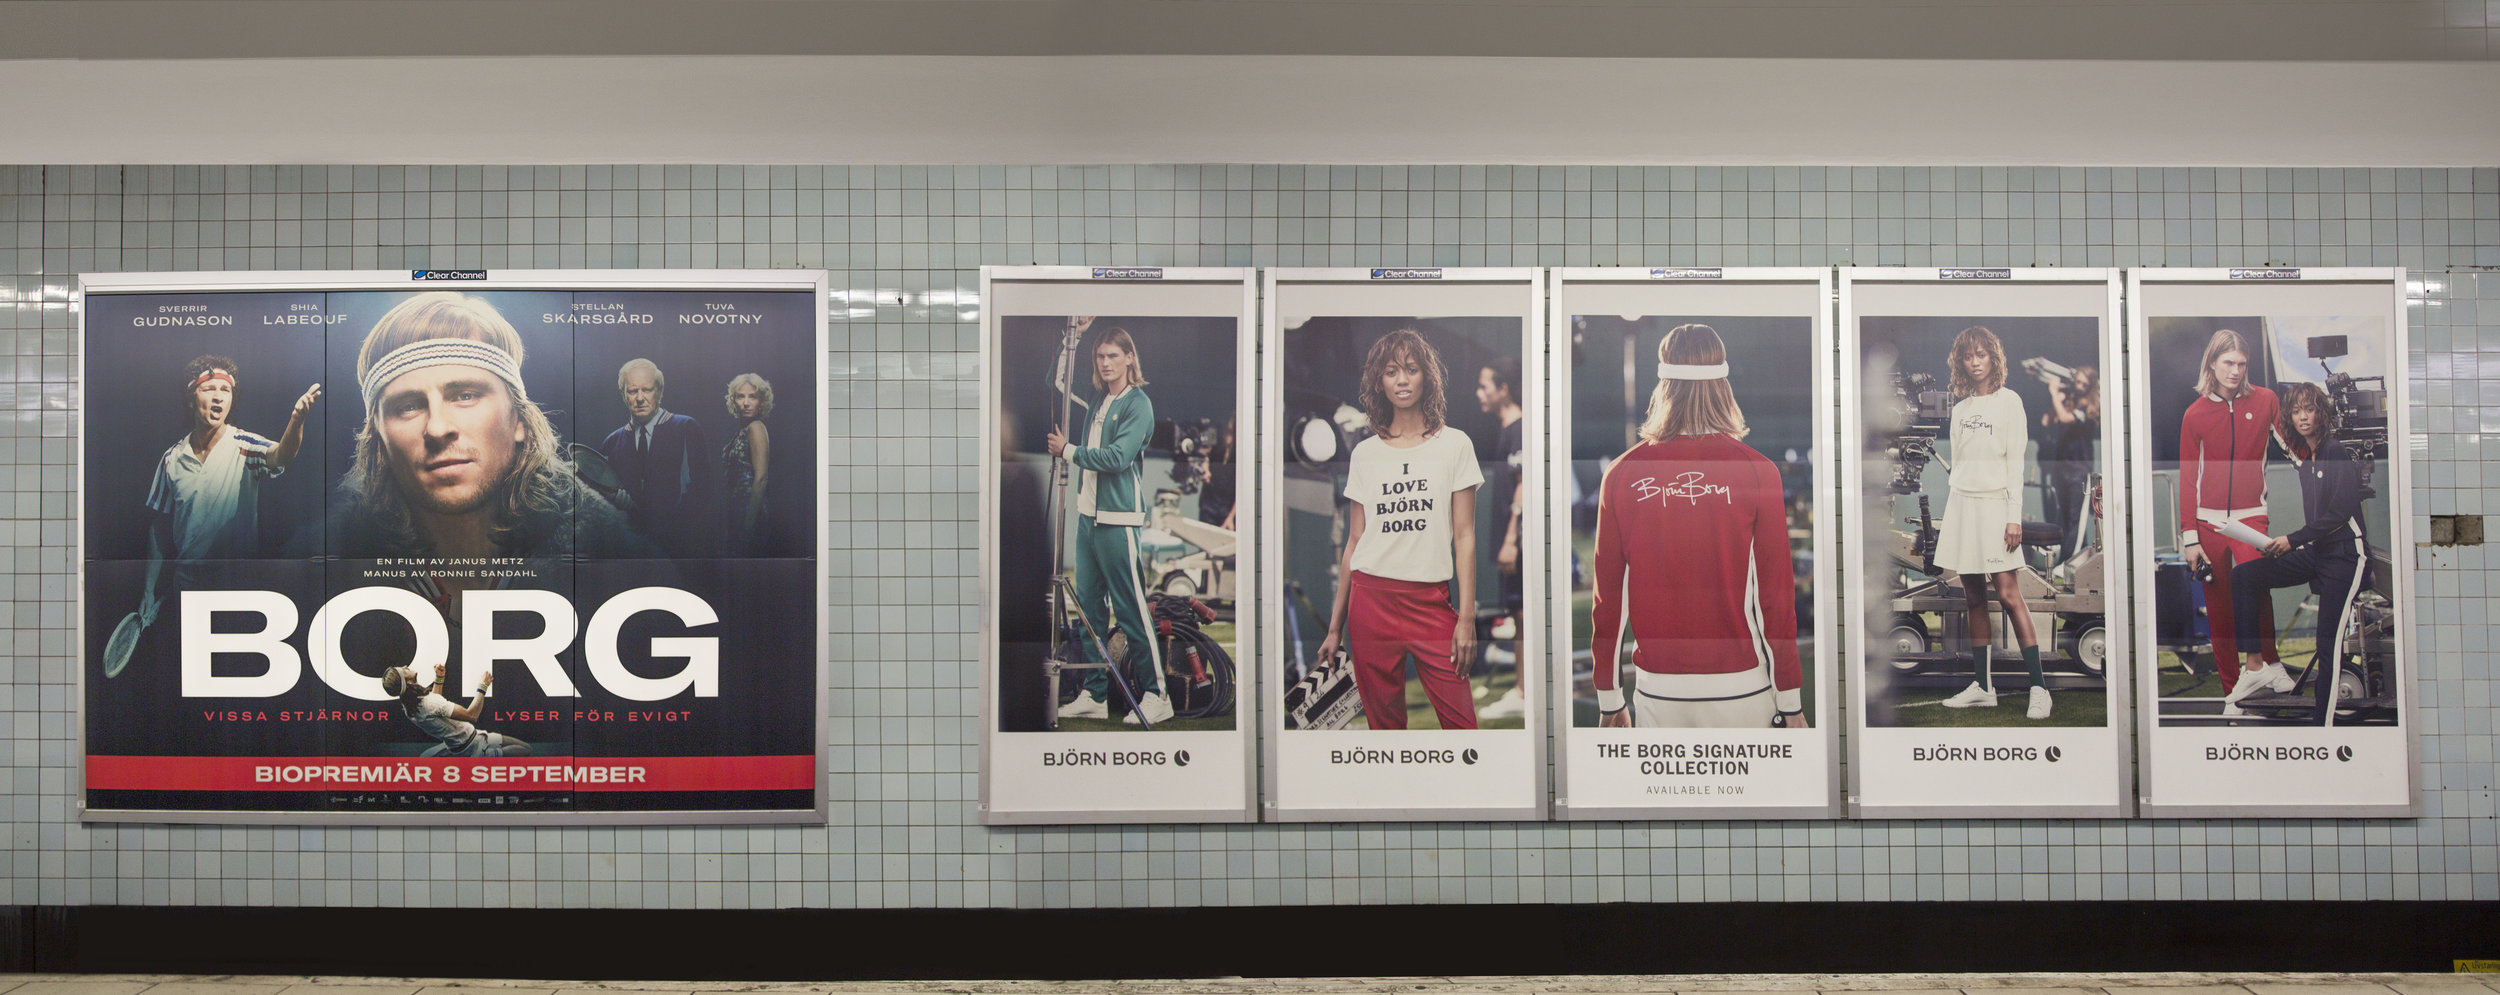 Our posters next to the official Borg vs. McEnroe poster